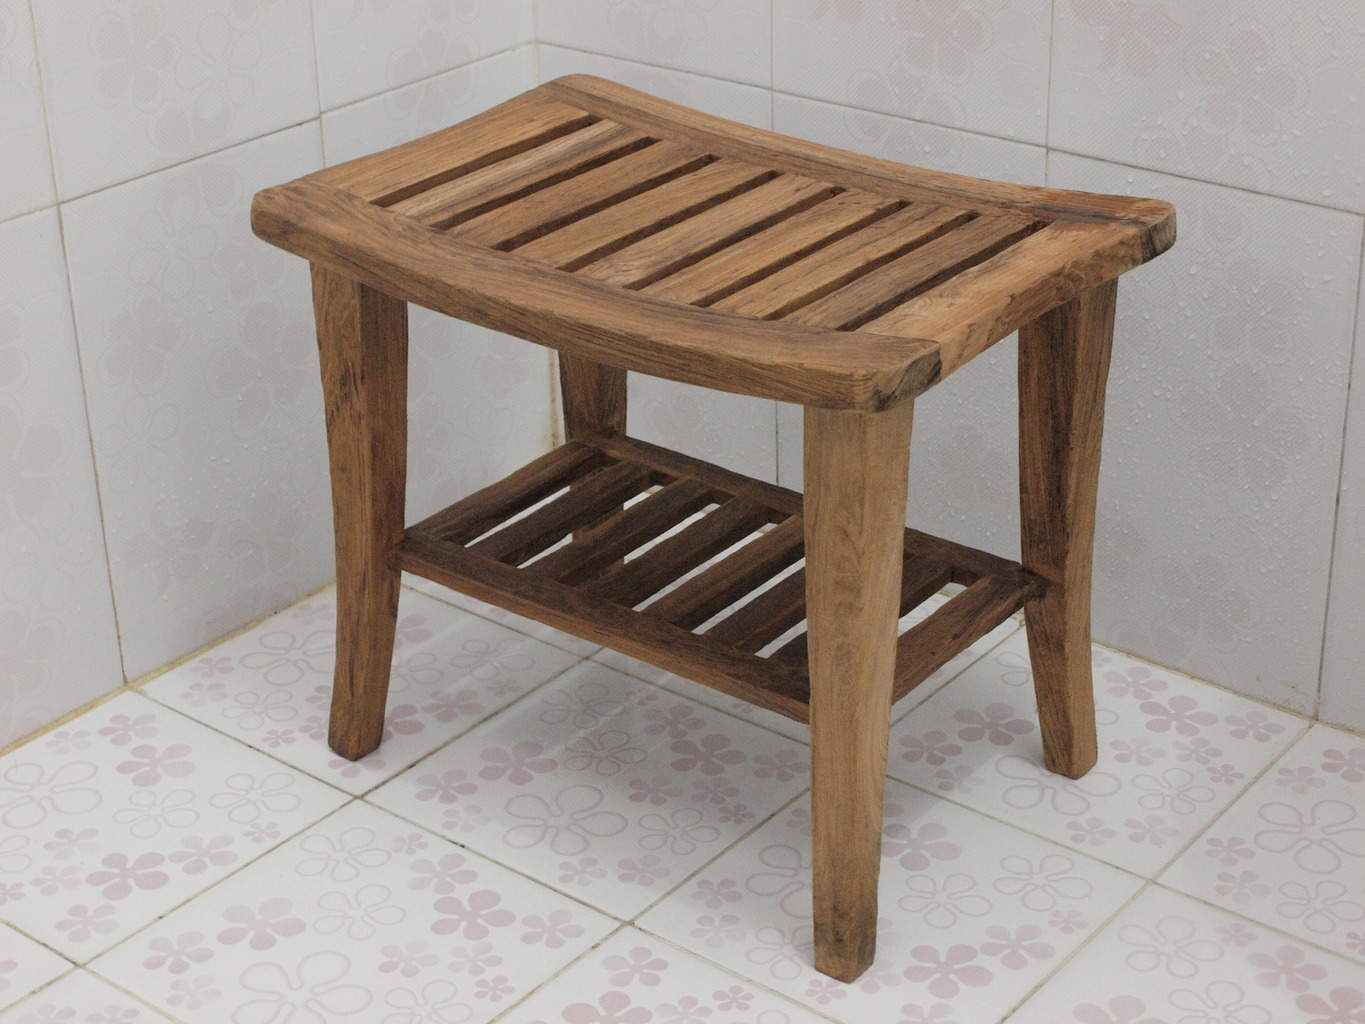 Teak Shower Bench | BAGOES TEAK Furniture | INDONESIAN Teak Garden ...